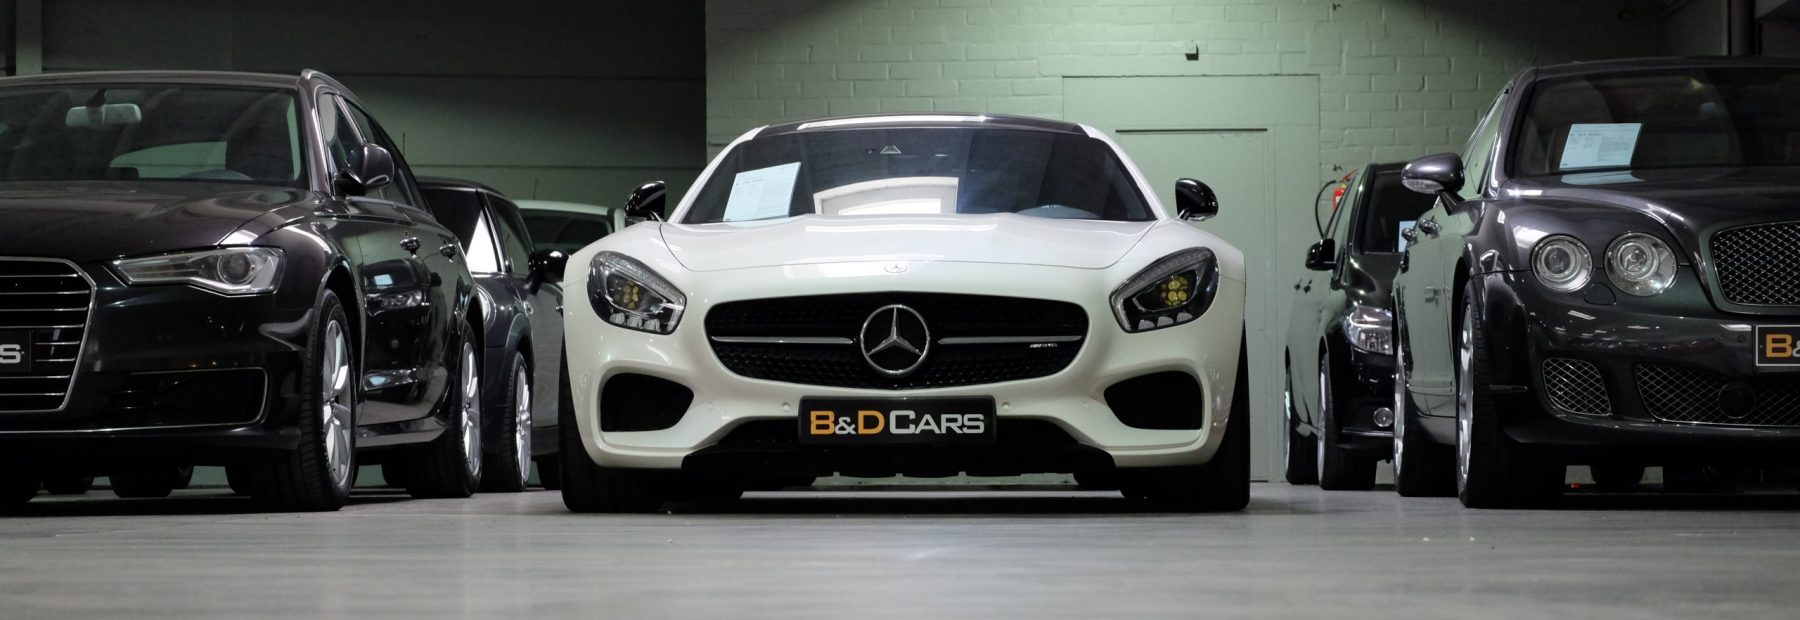 Welcome at B&D Cars